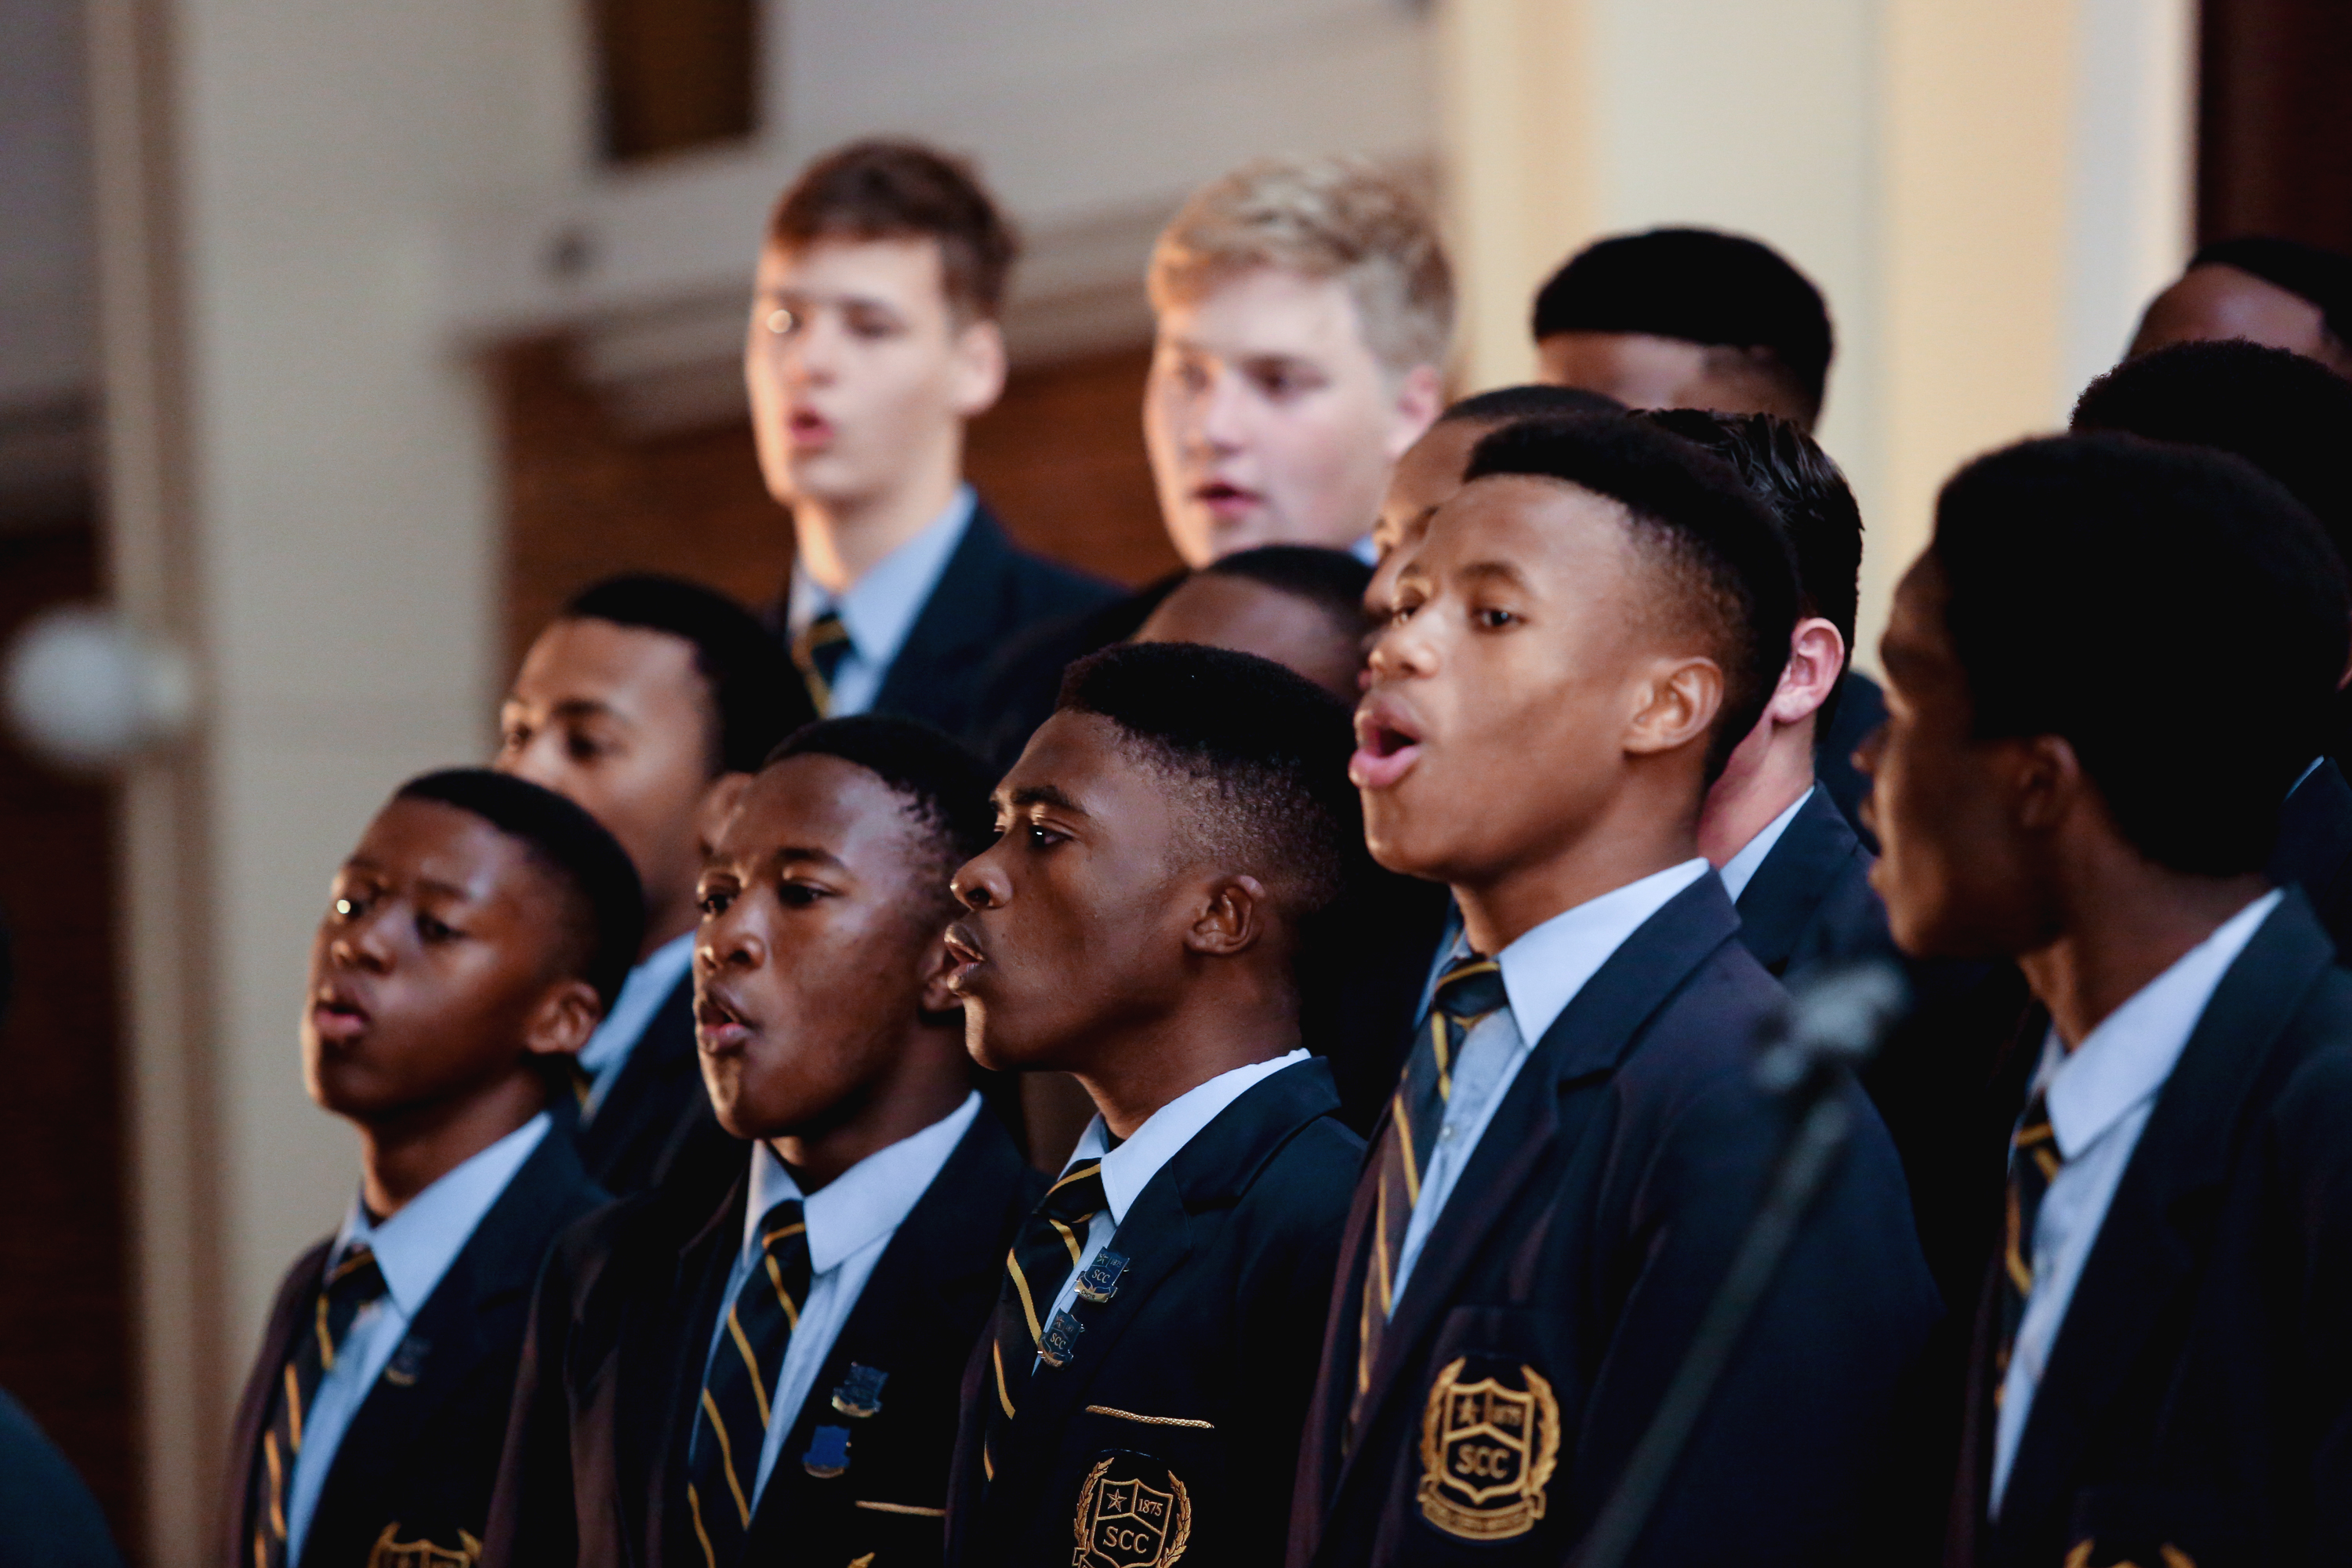 school students singing in a choir